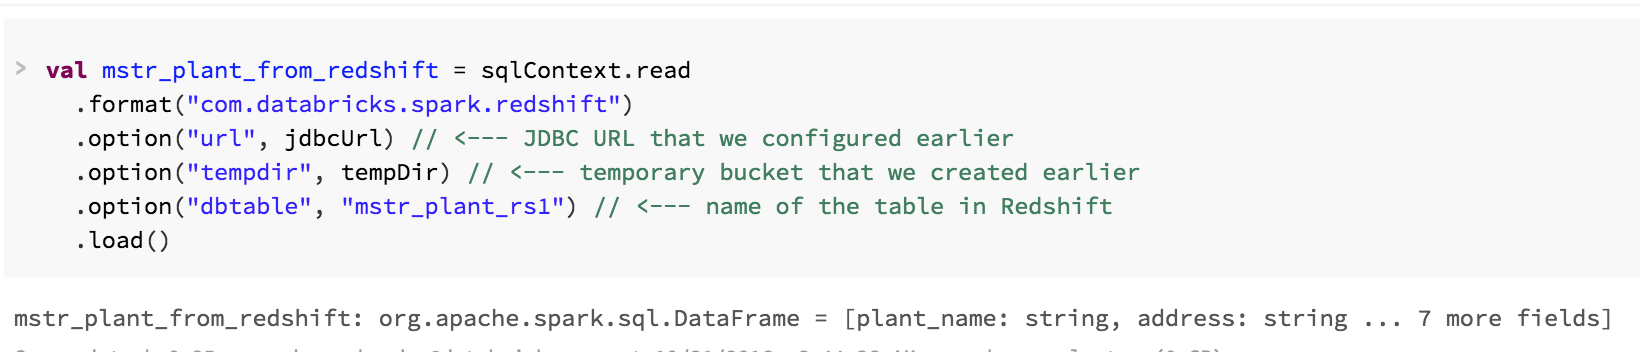 Screenshot from a Databricks notebook demonstrating how to create a Dataframe from an entire Redshift table.